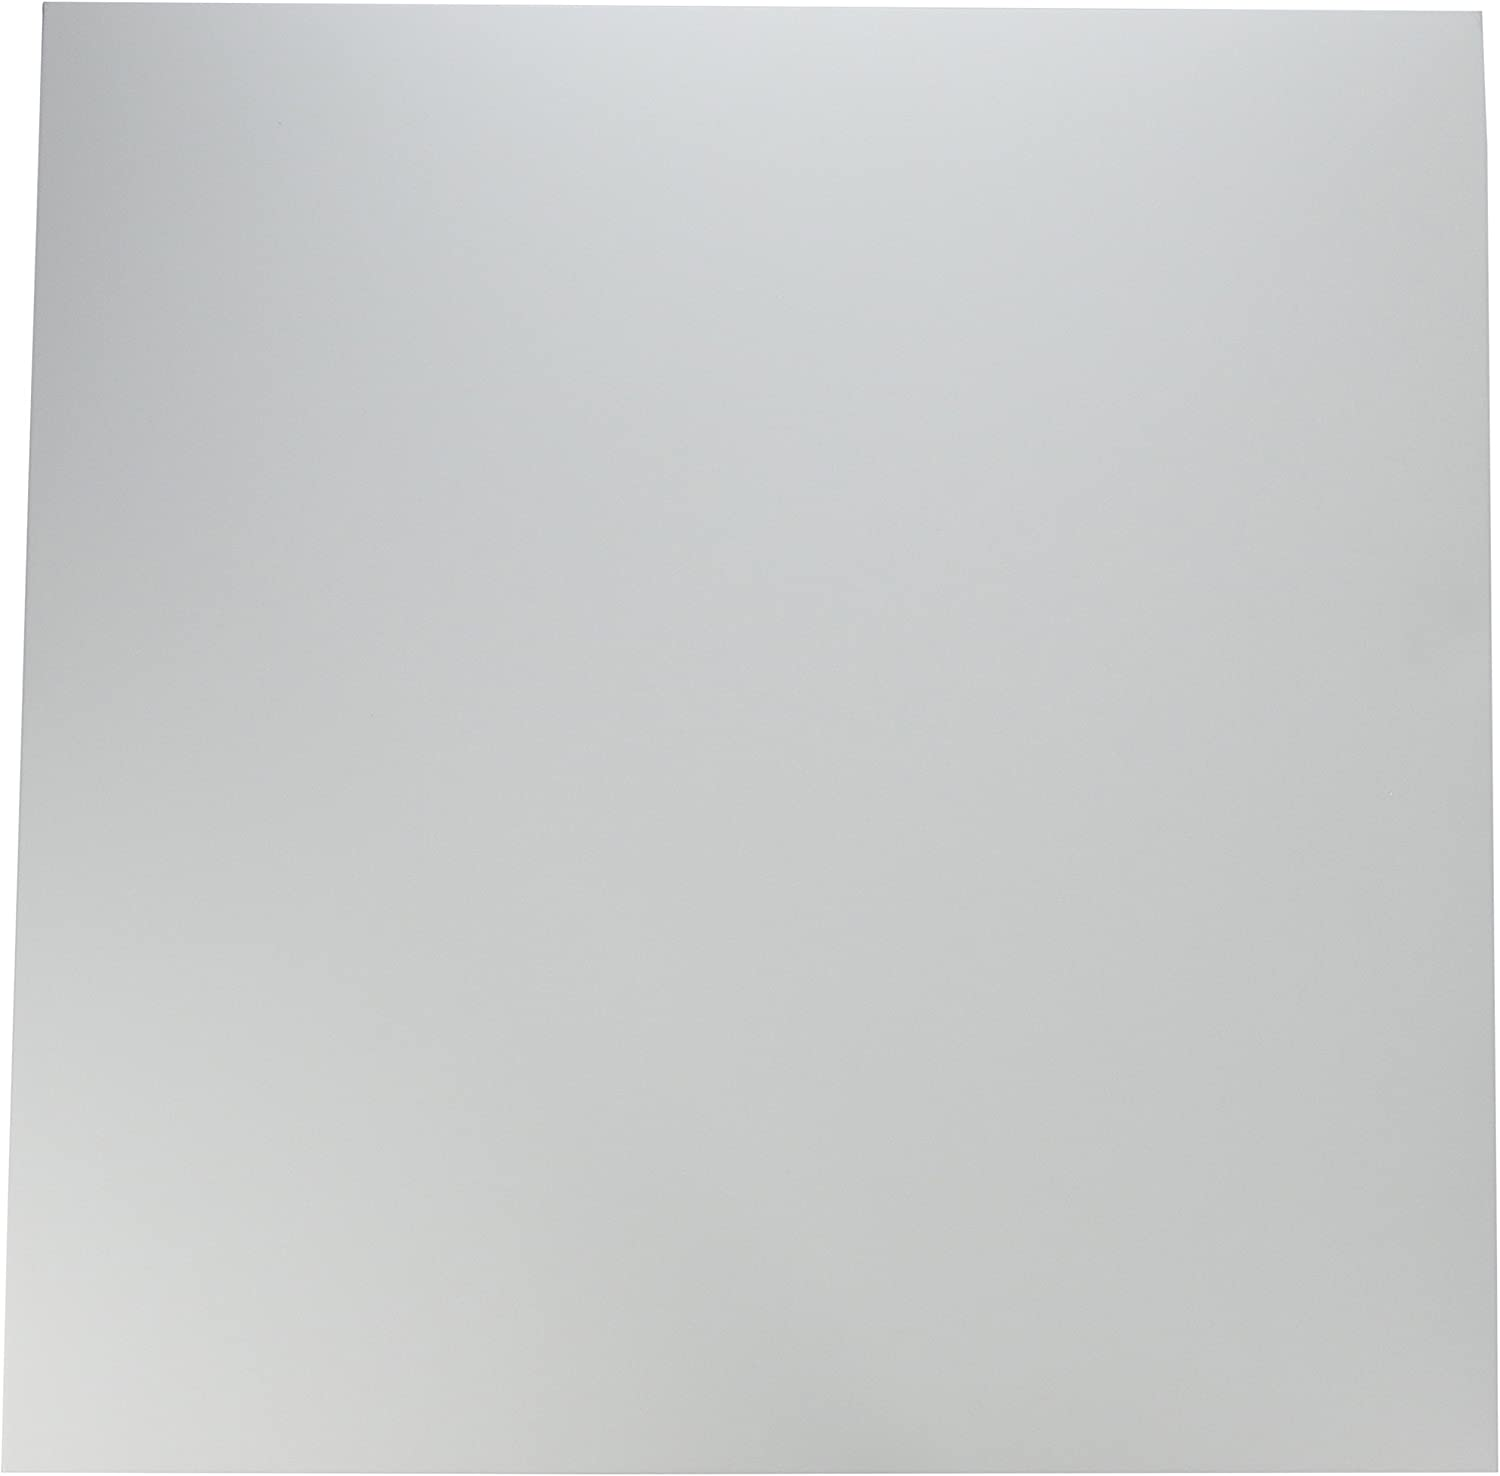 10 Pack White Crafters Companion Construction Cardstock 16 by 16